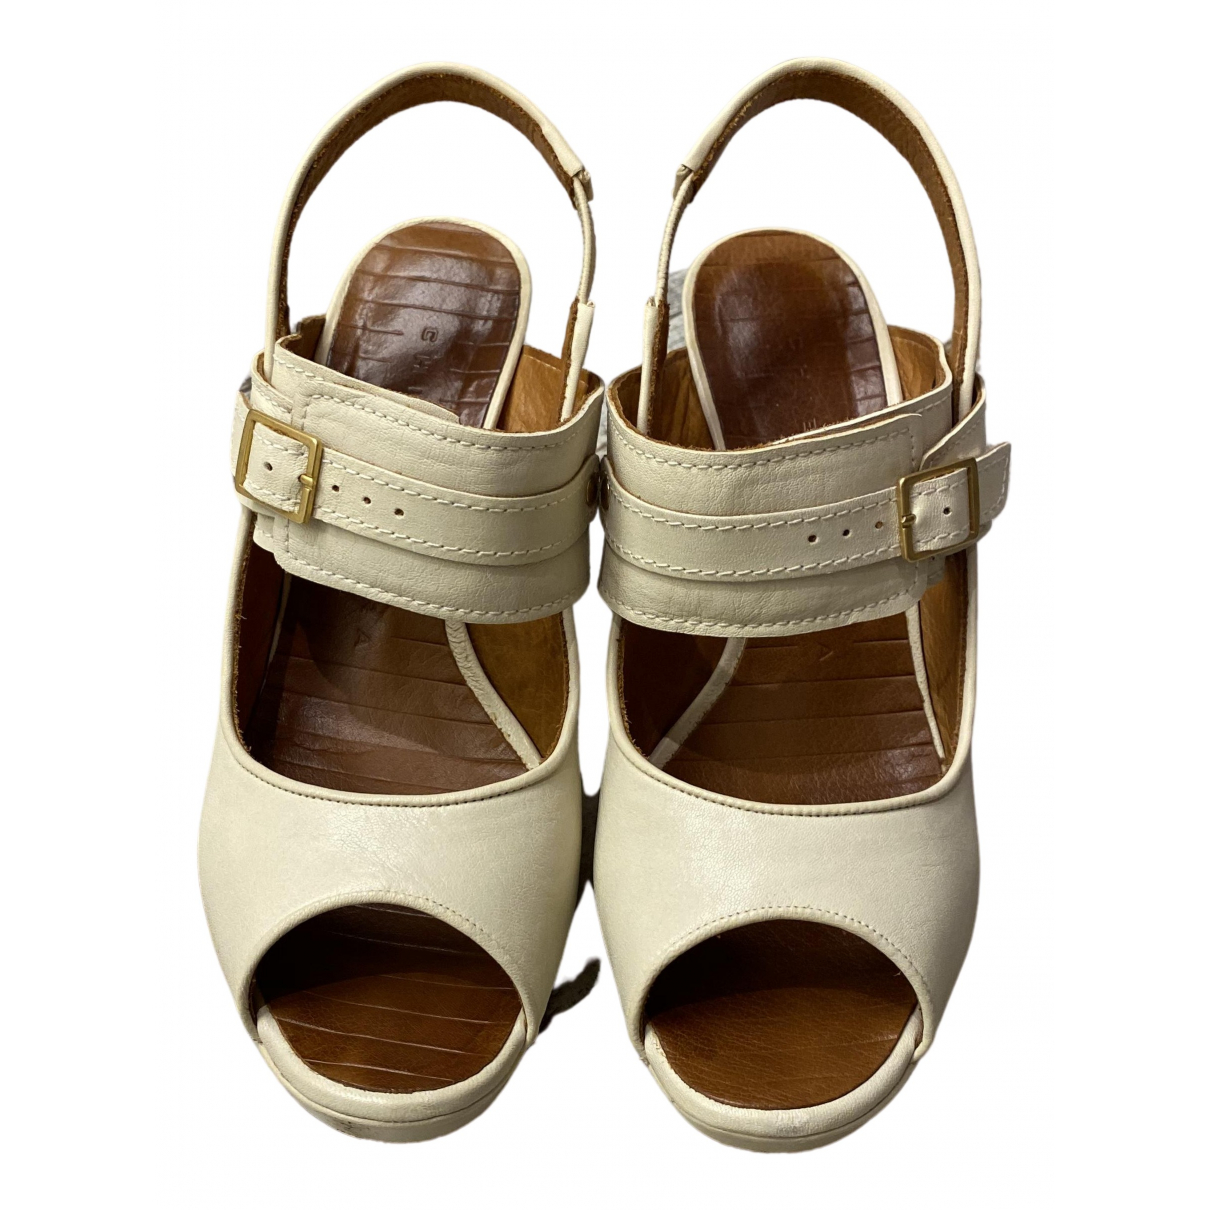 Chie Mihara N White Leather Heels for Women 38 EU